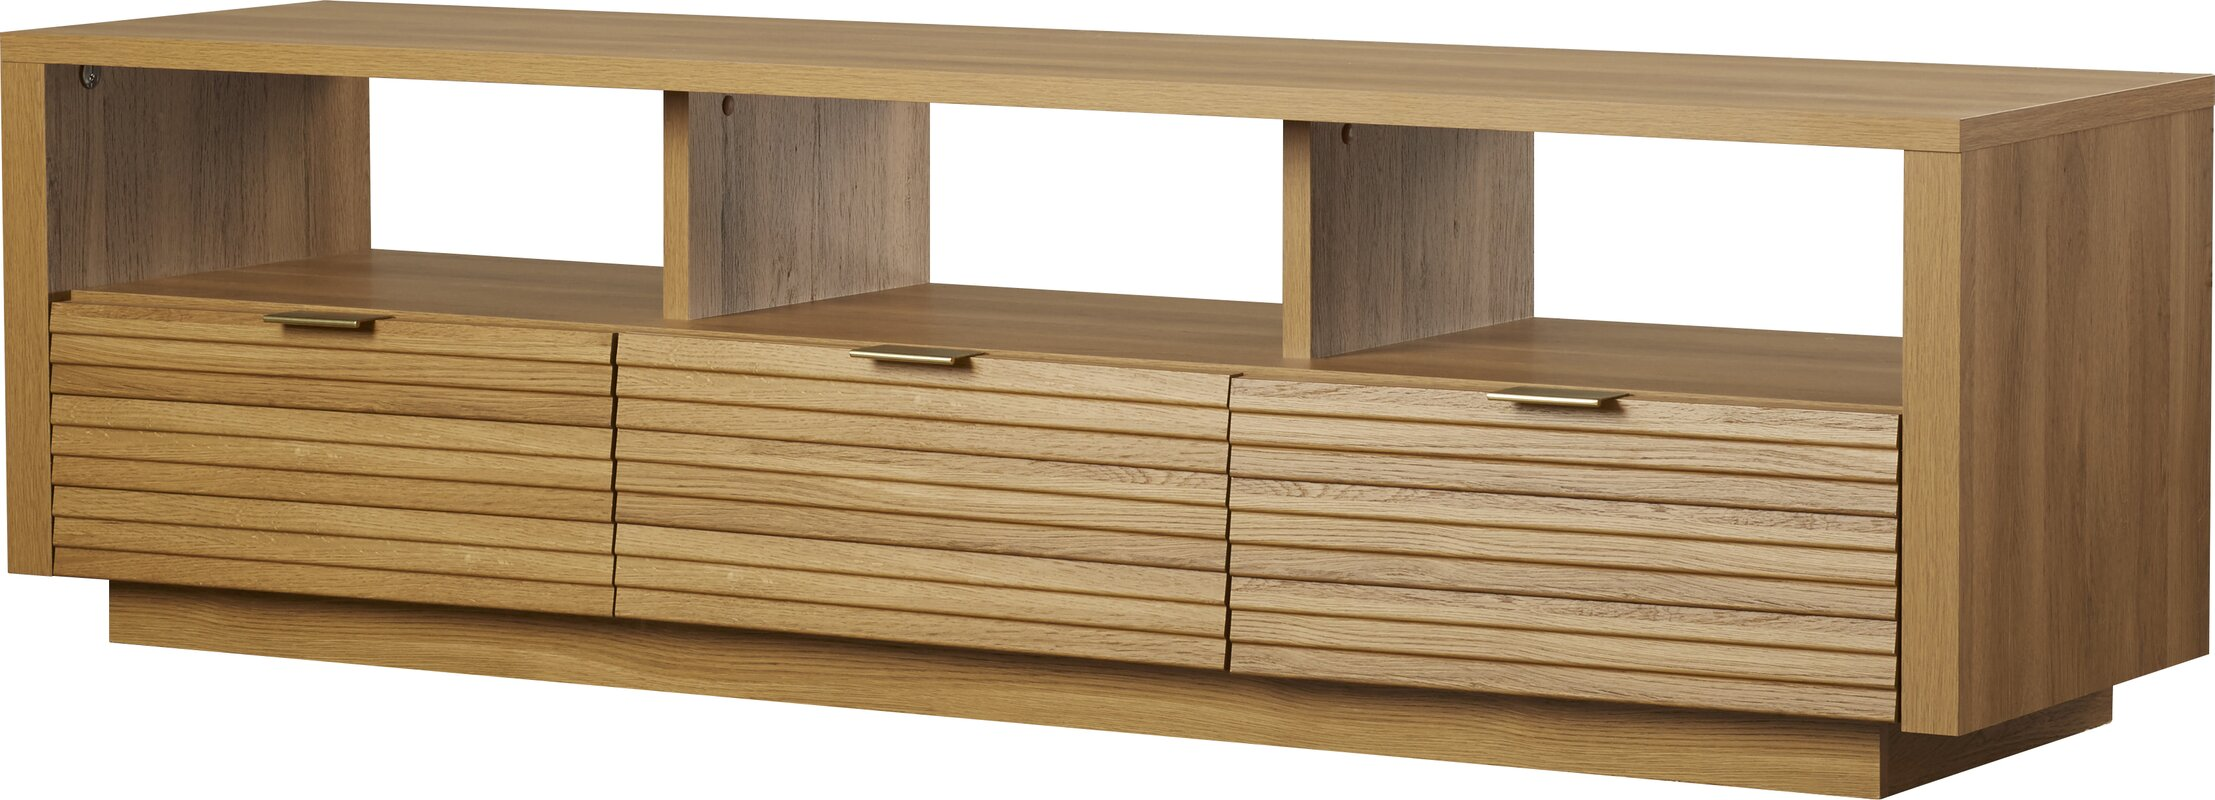 Gamma 724 tv stand reviews allmodern gamma 724 tv stand floridaeventfo Images